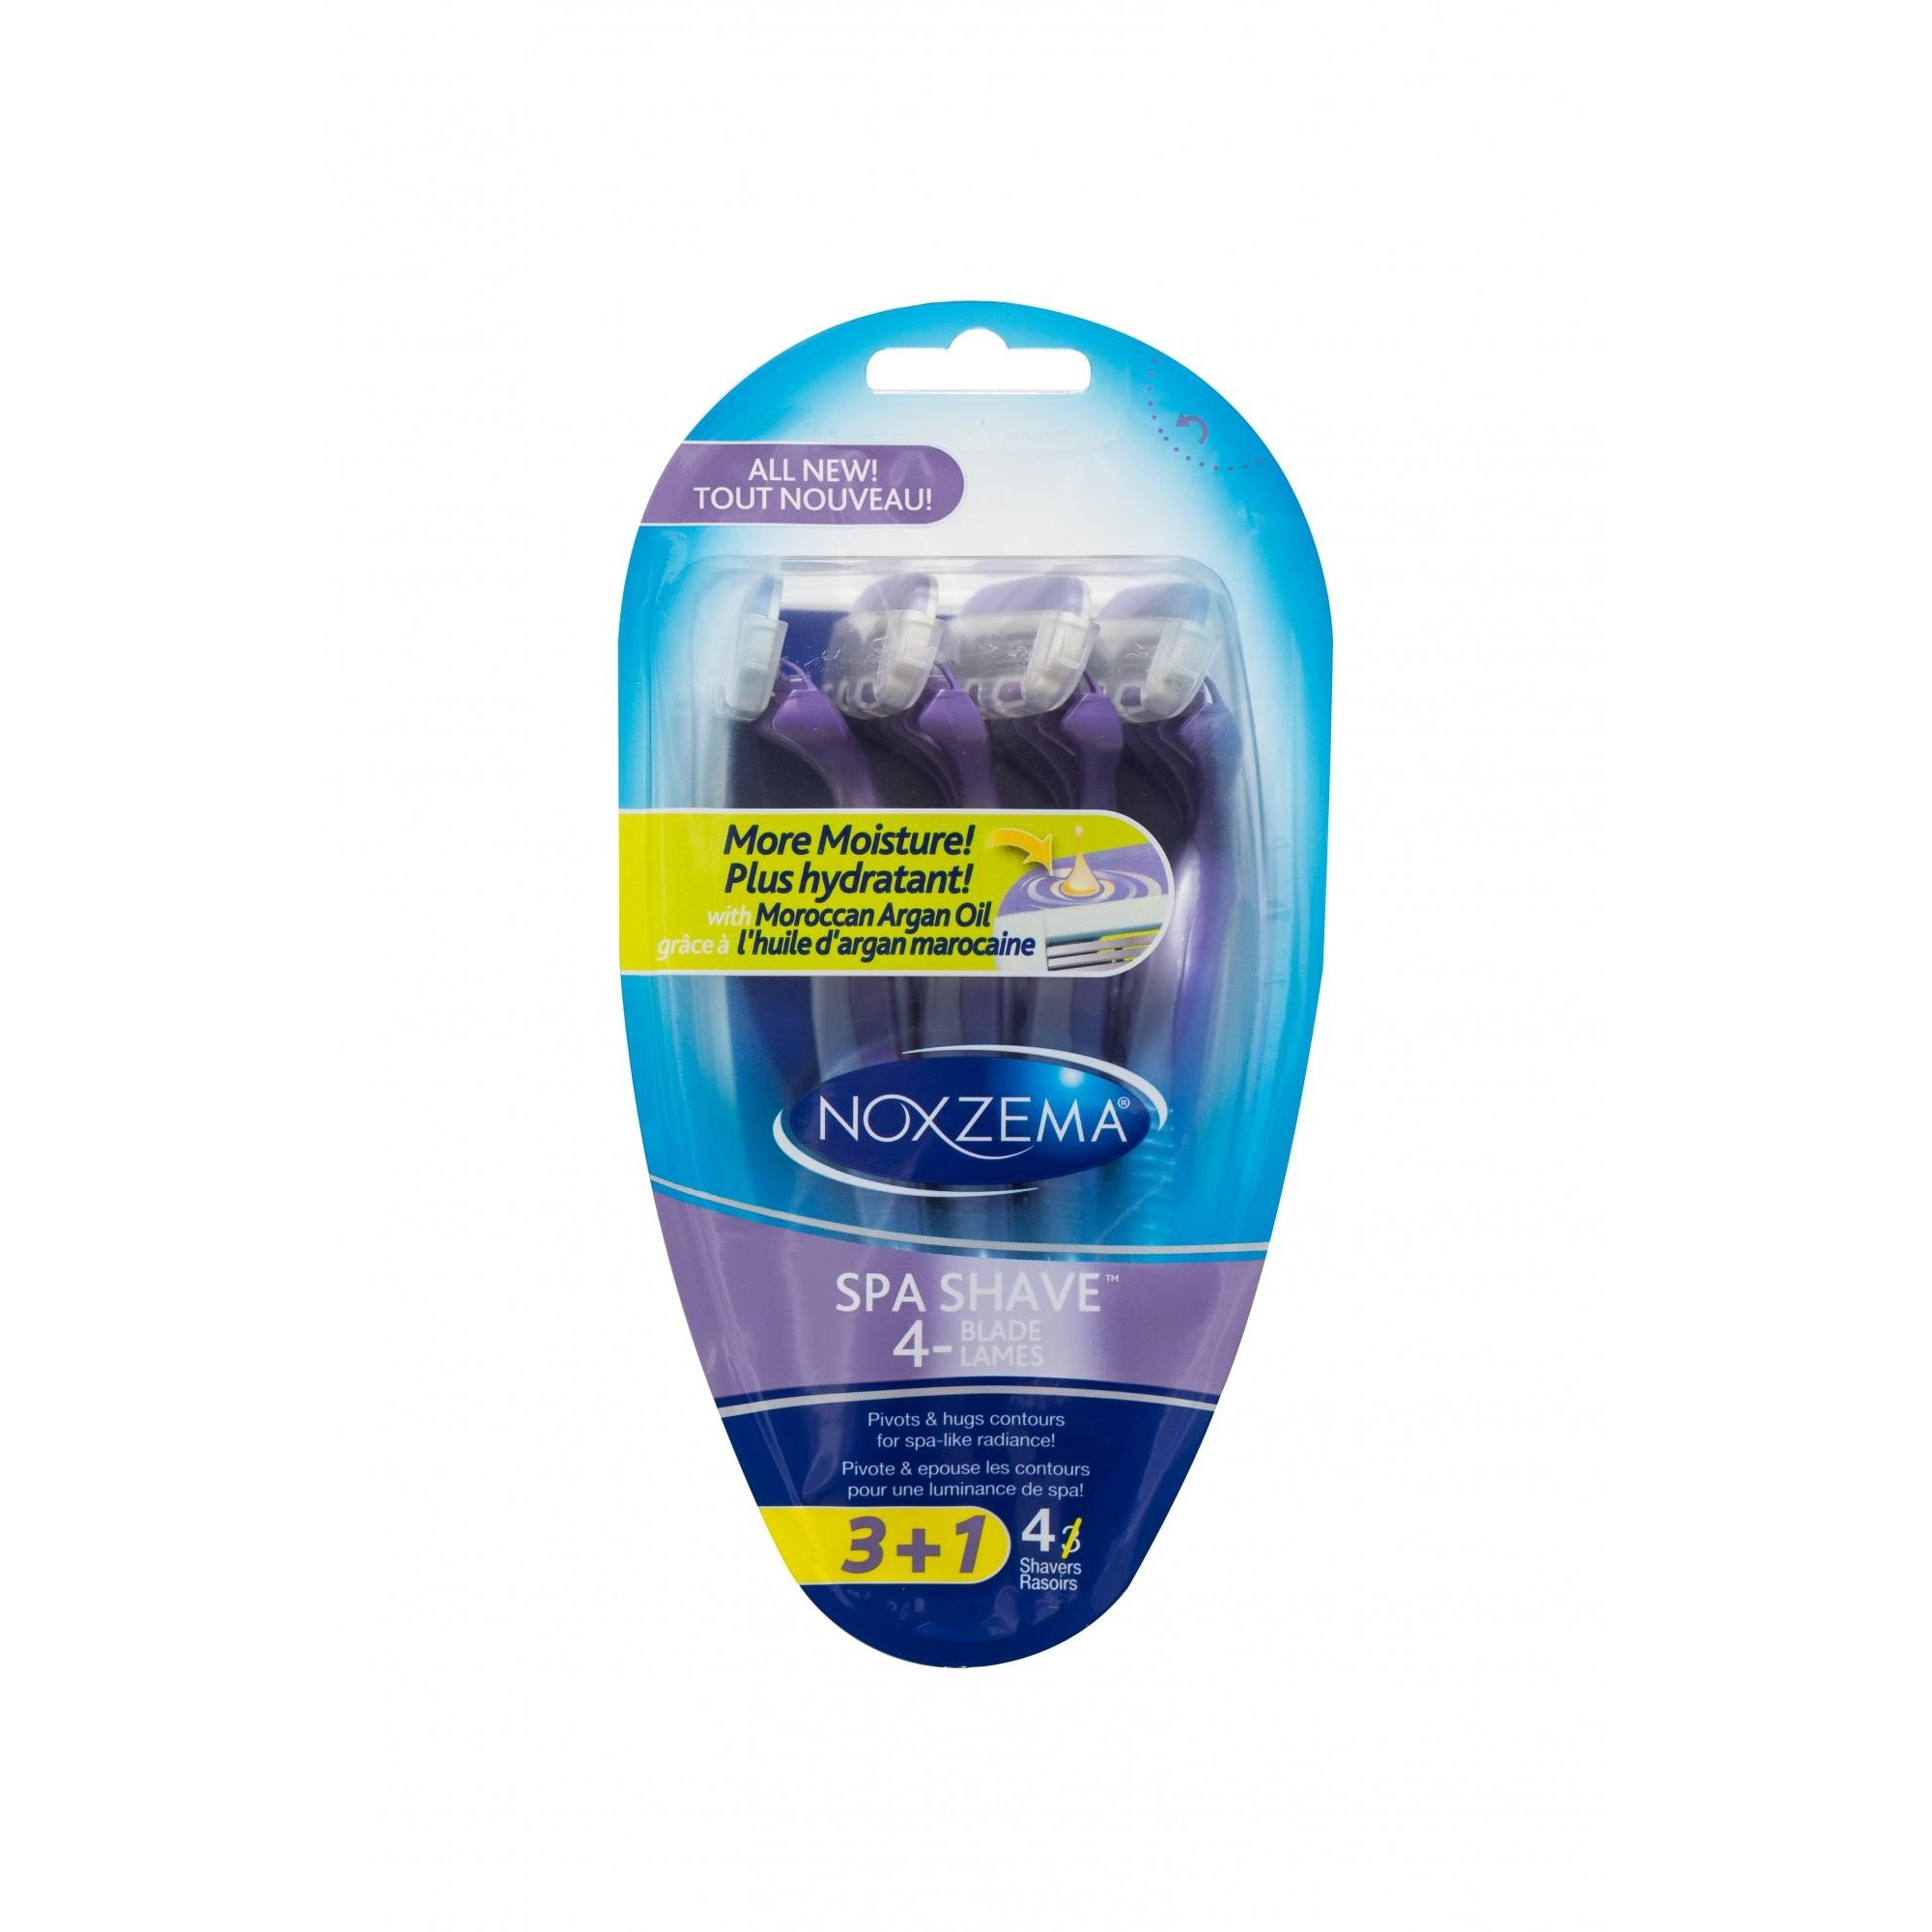 Noxzema Spa Shave 4-Blade Disposable Razor, 4 Ct